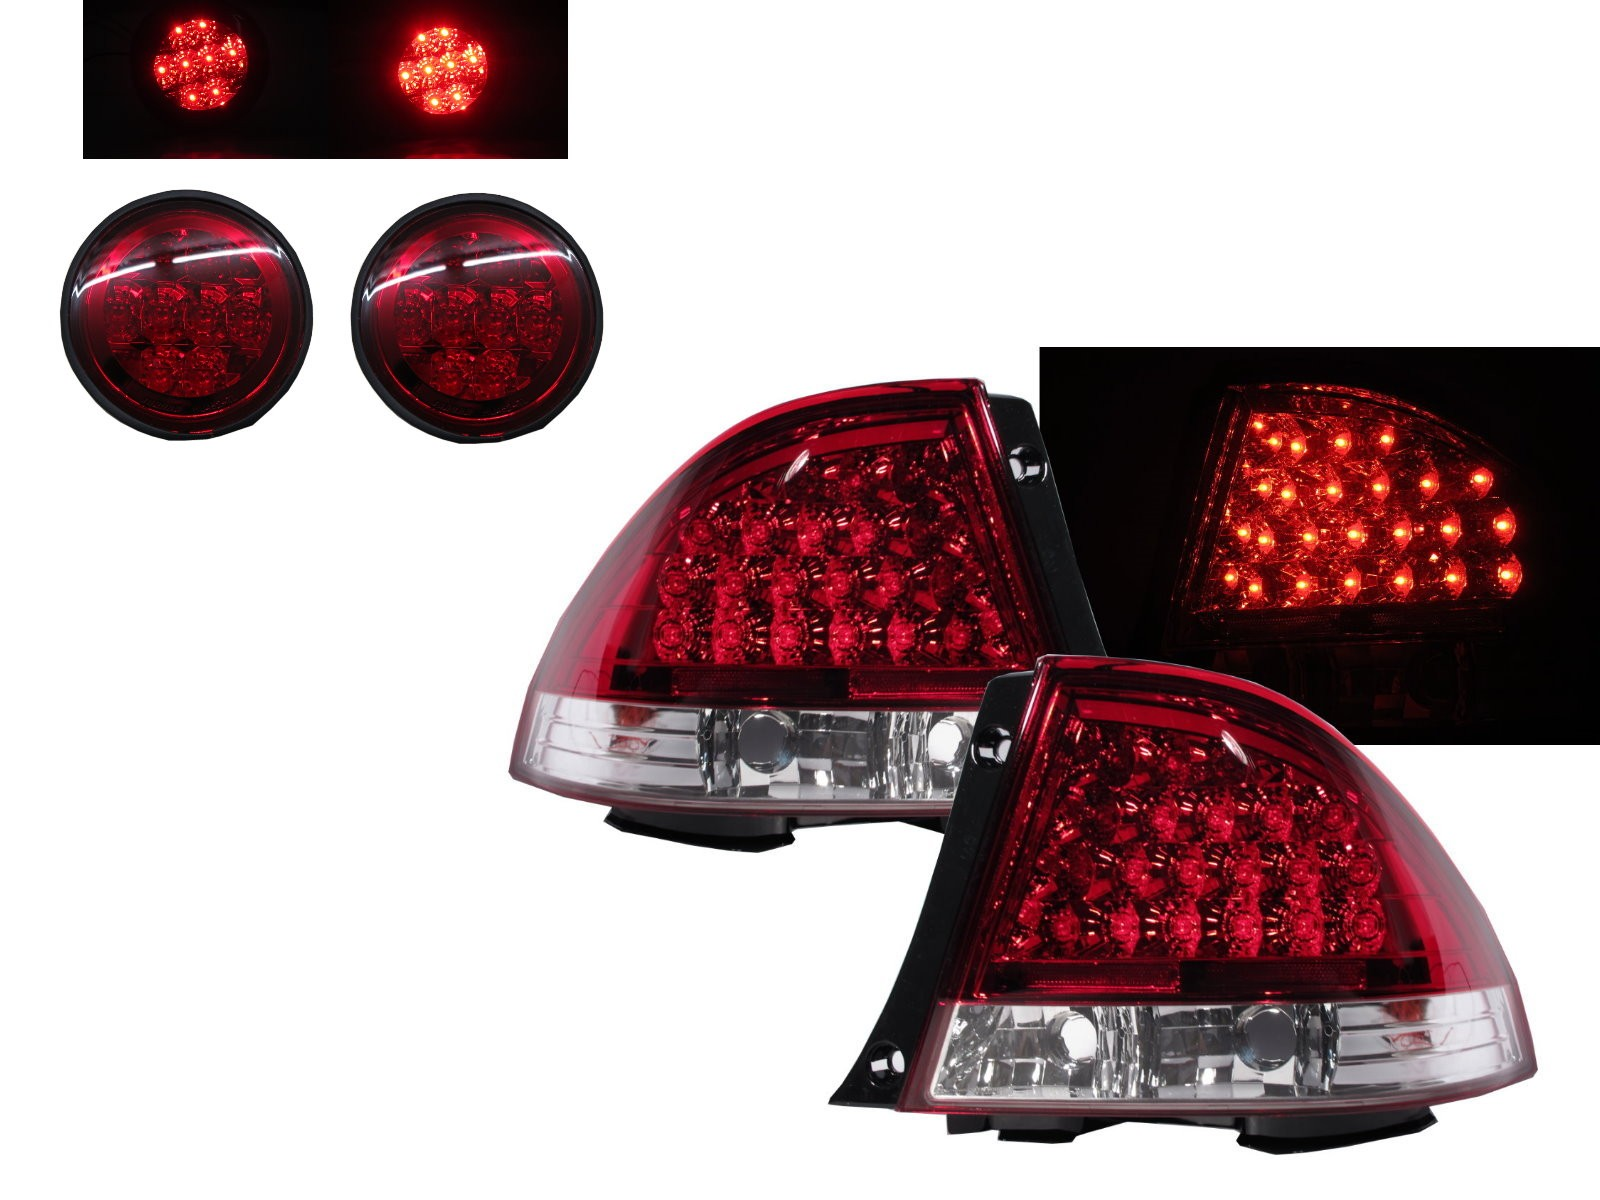 CrazyTheGod Altezza XE10 First generation 1999-2005 Sedan/Hatchback/Wagon 4D/5D LED Tail Rear Light Red/White for TOYOTA